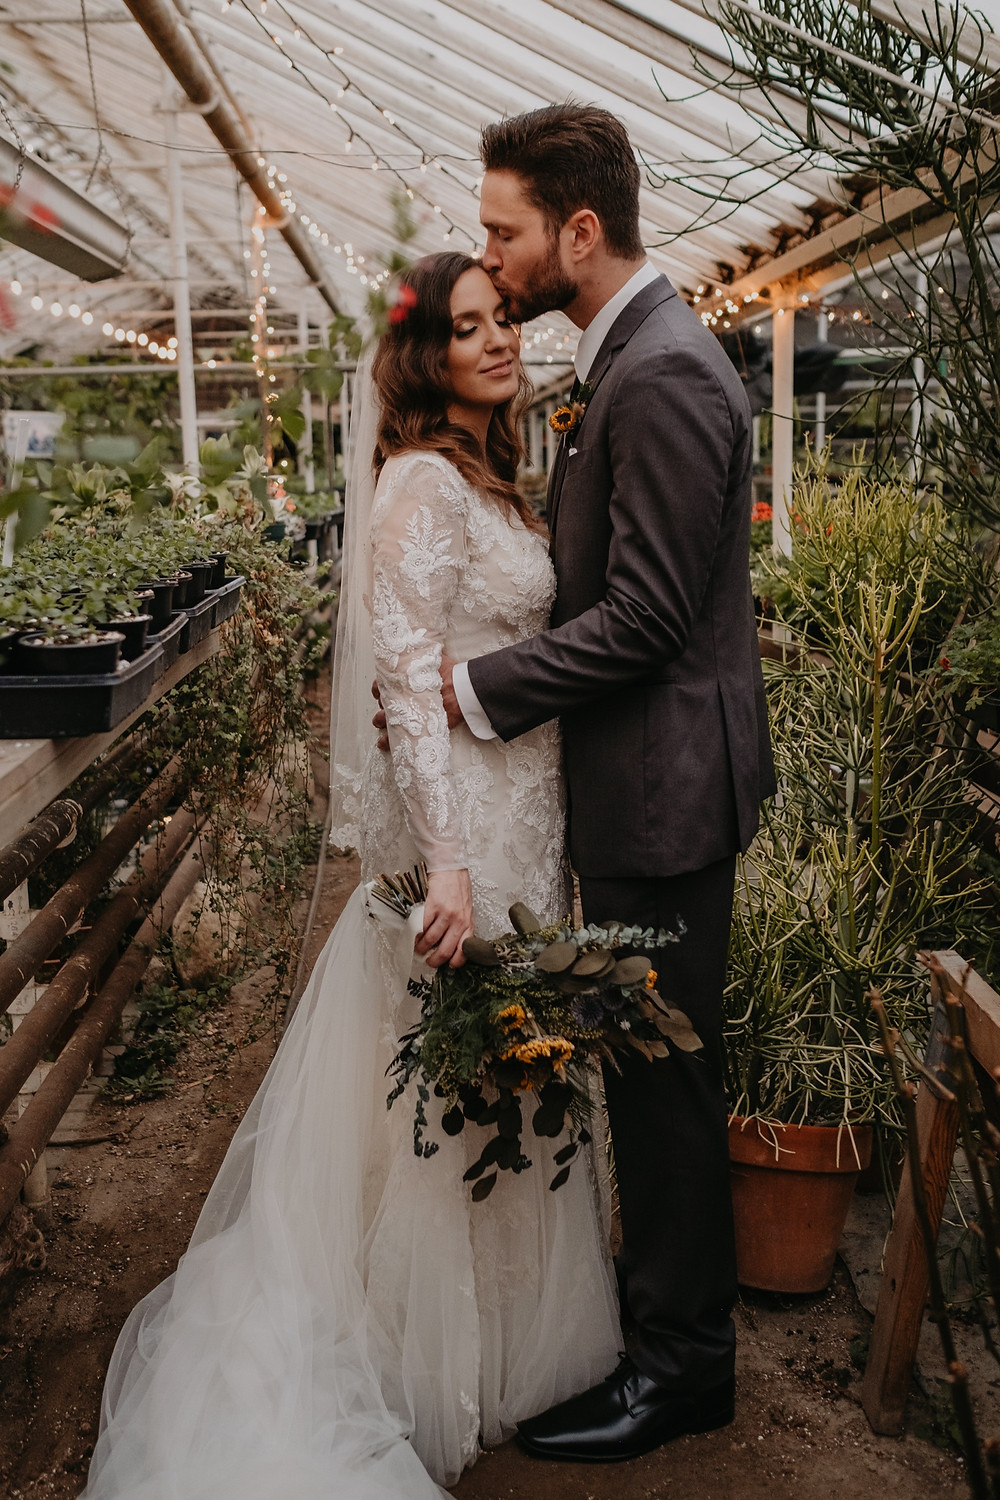 Graye's Greenhouse lifestyle wedding photos. Photographed by Nicole Leanne Photography.